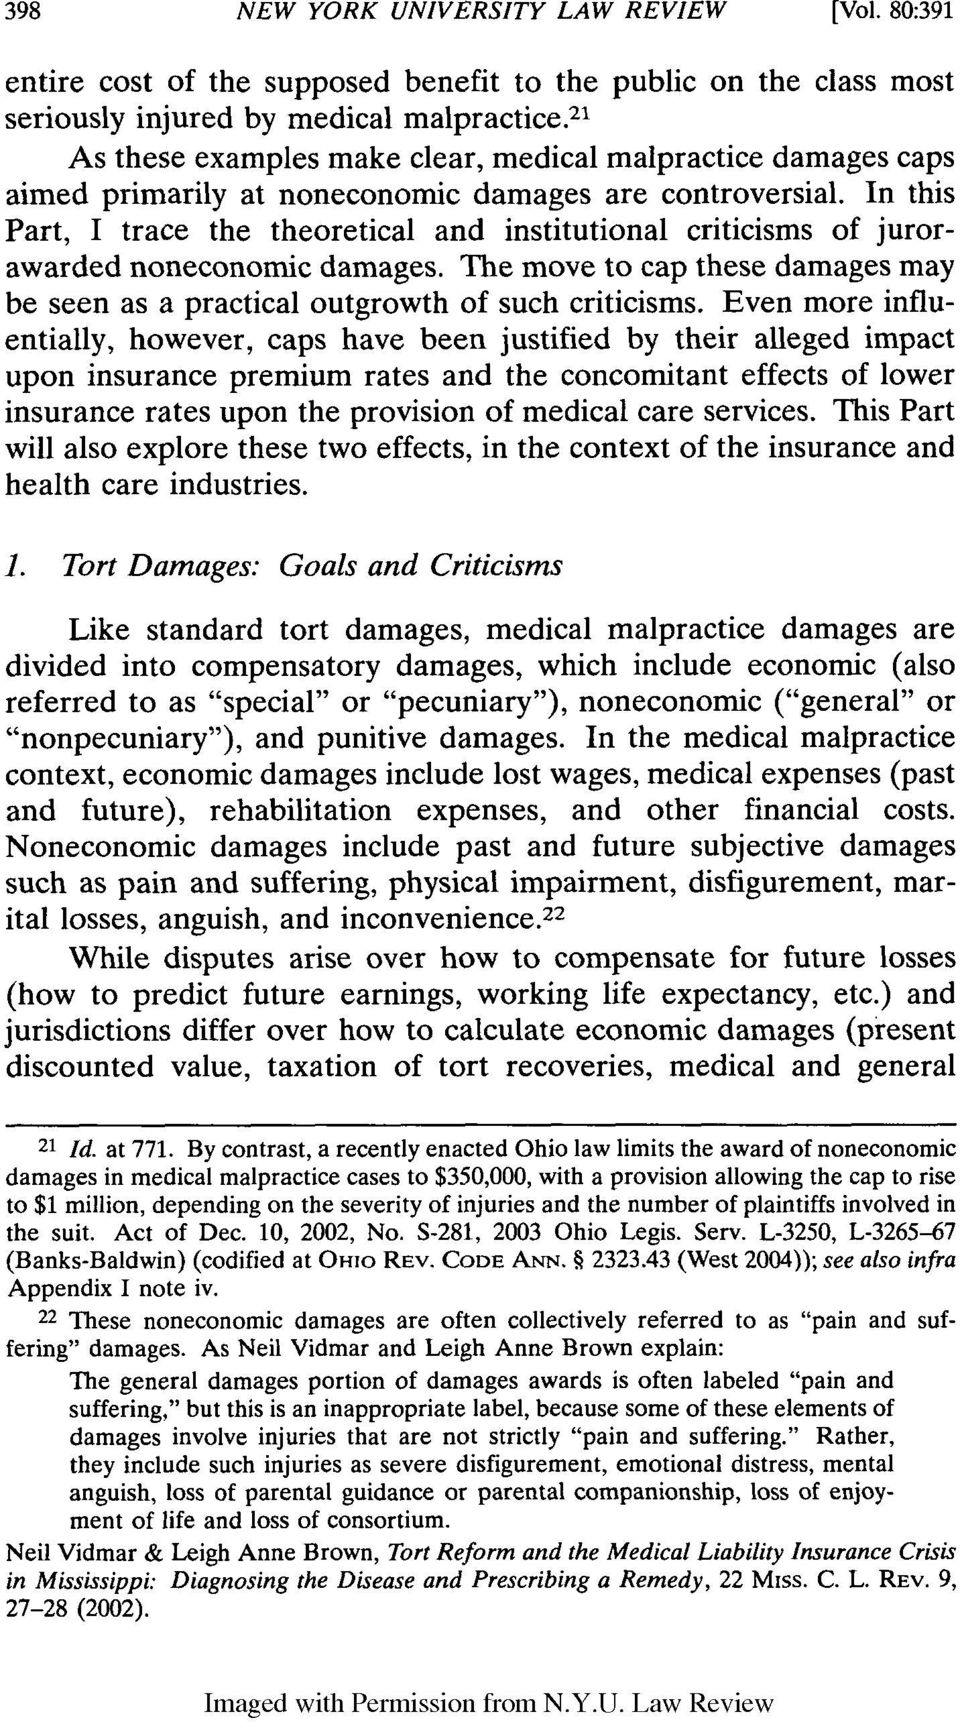 In this Part, I trace the theoretical and institutional criticisms of jurorawarded noneconomic damages. The move to cap these damages may be seen as a practical outgrowth of such criticisms.